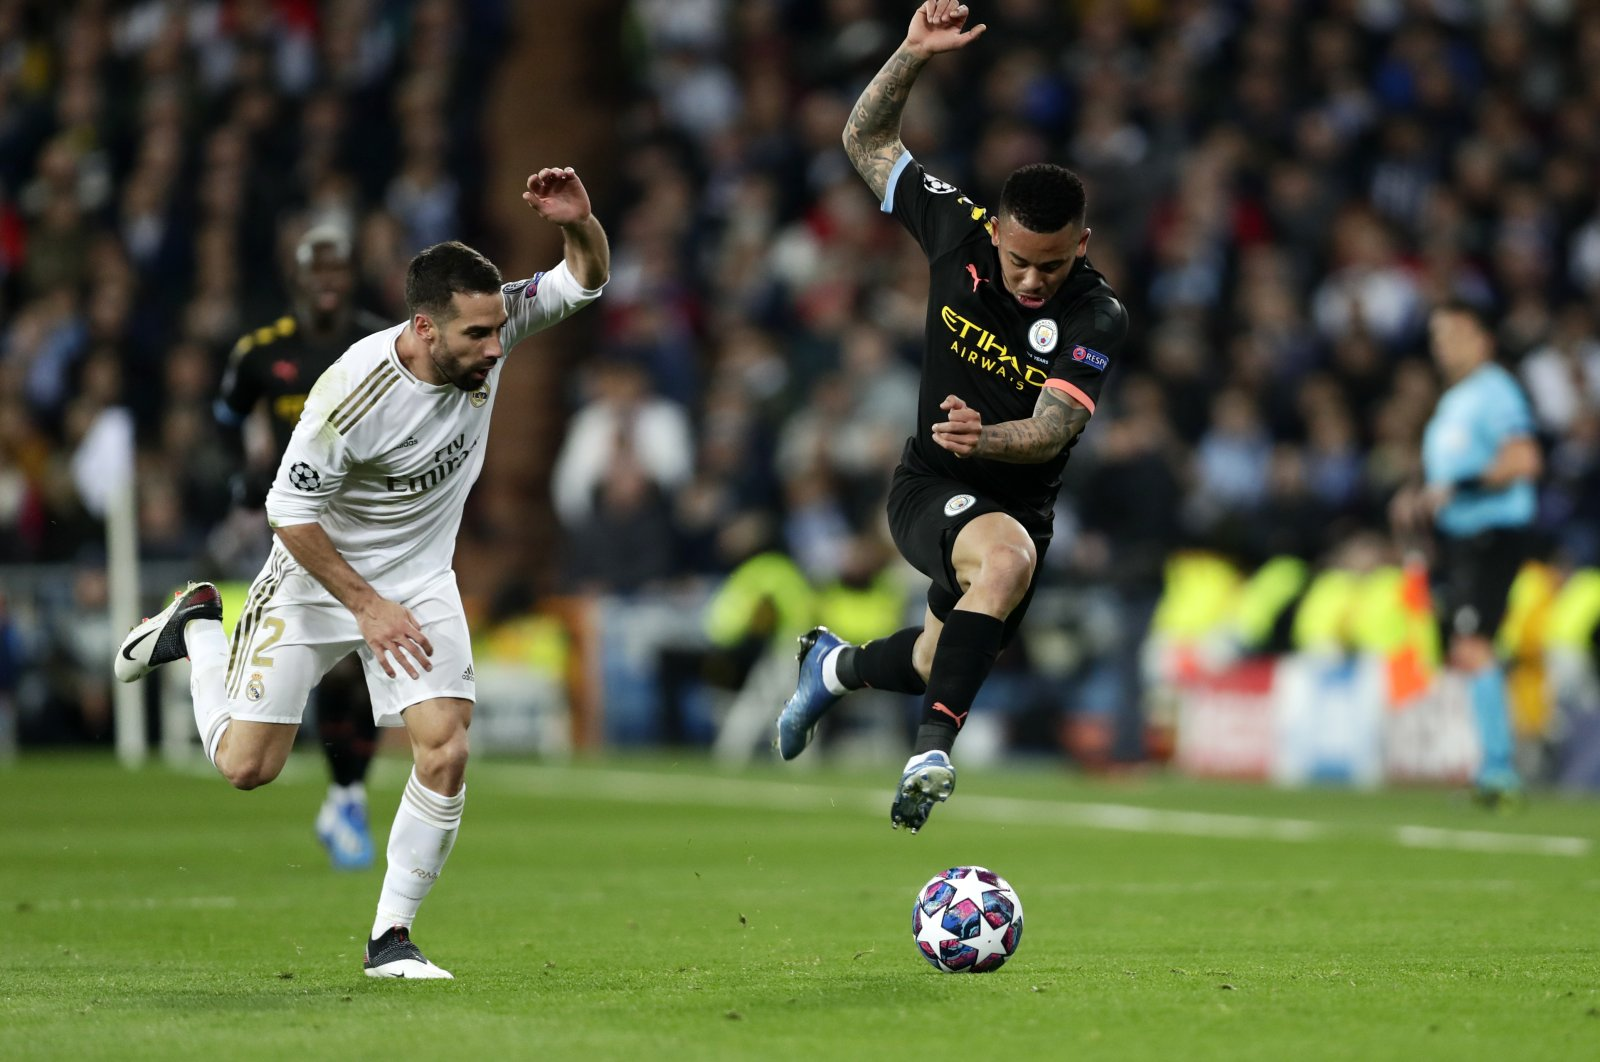 Manchester City's Gabriel Jesus (R) and Real Madrid's Dani Carvajal run for the ball during a Champions League round of 16 match in Madrid, Spain, Feb. 26, 2020. (AP Photo)